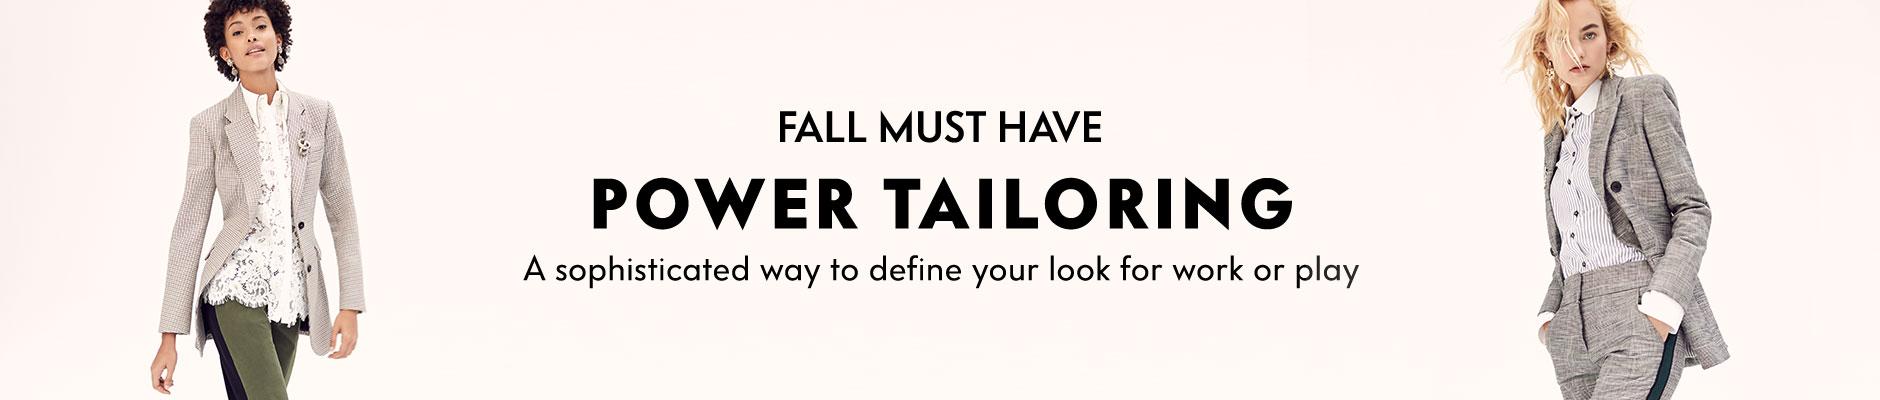 Fall must have power tailoring a sophisticated way to define your look for work or play